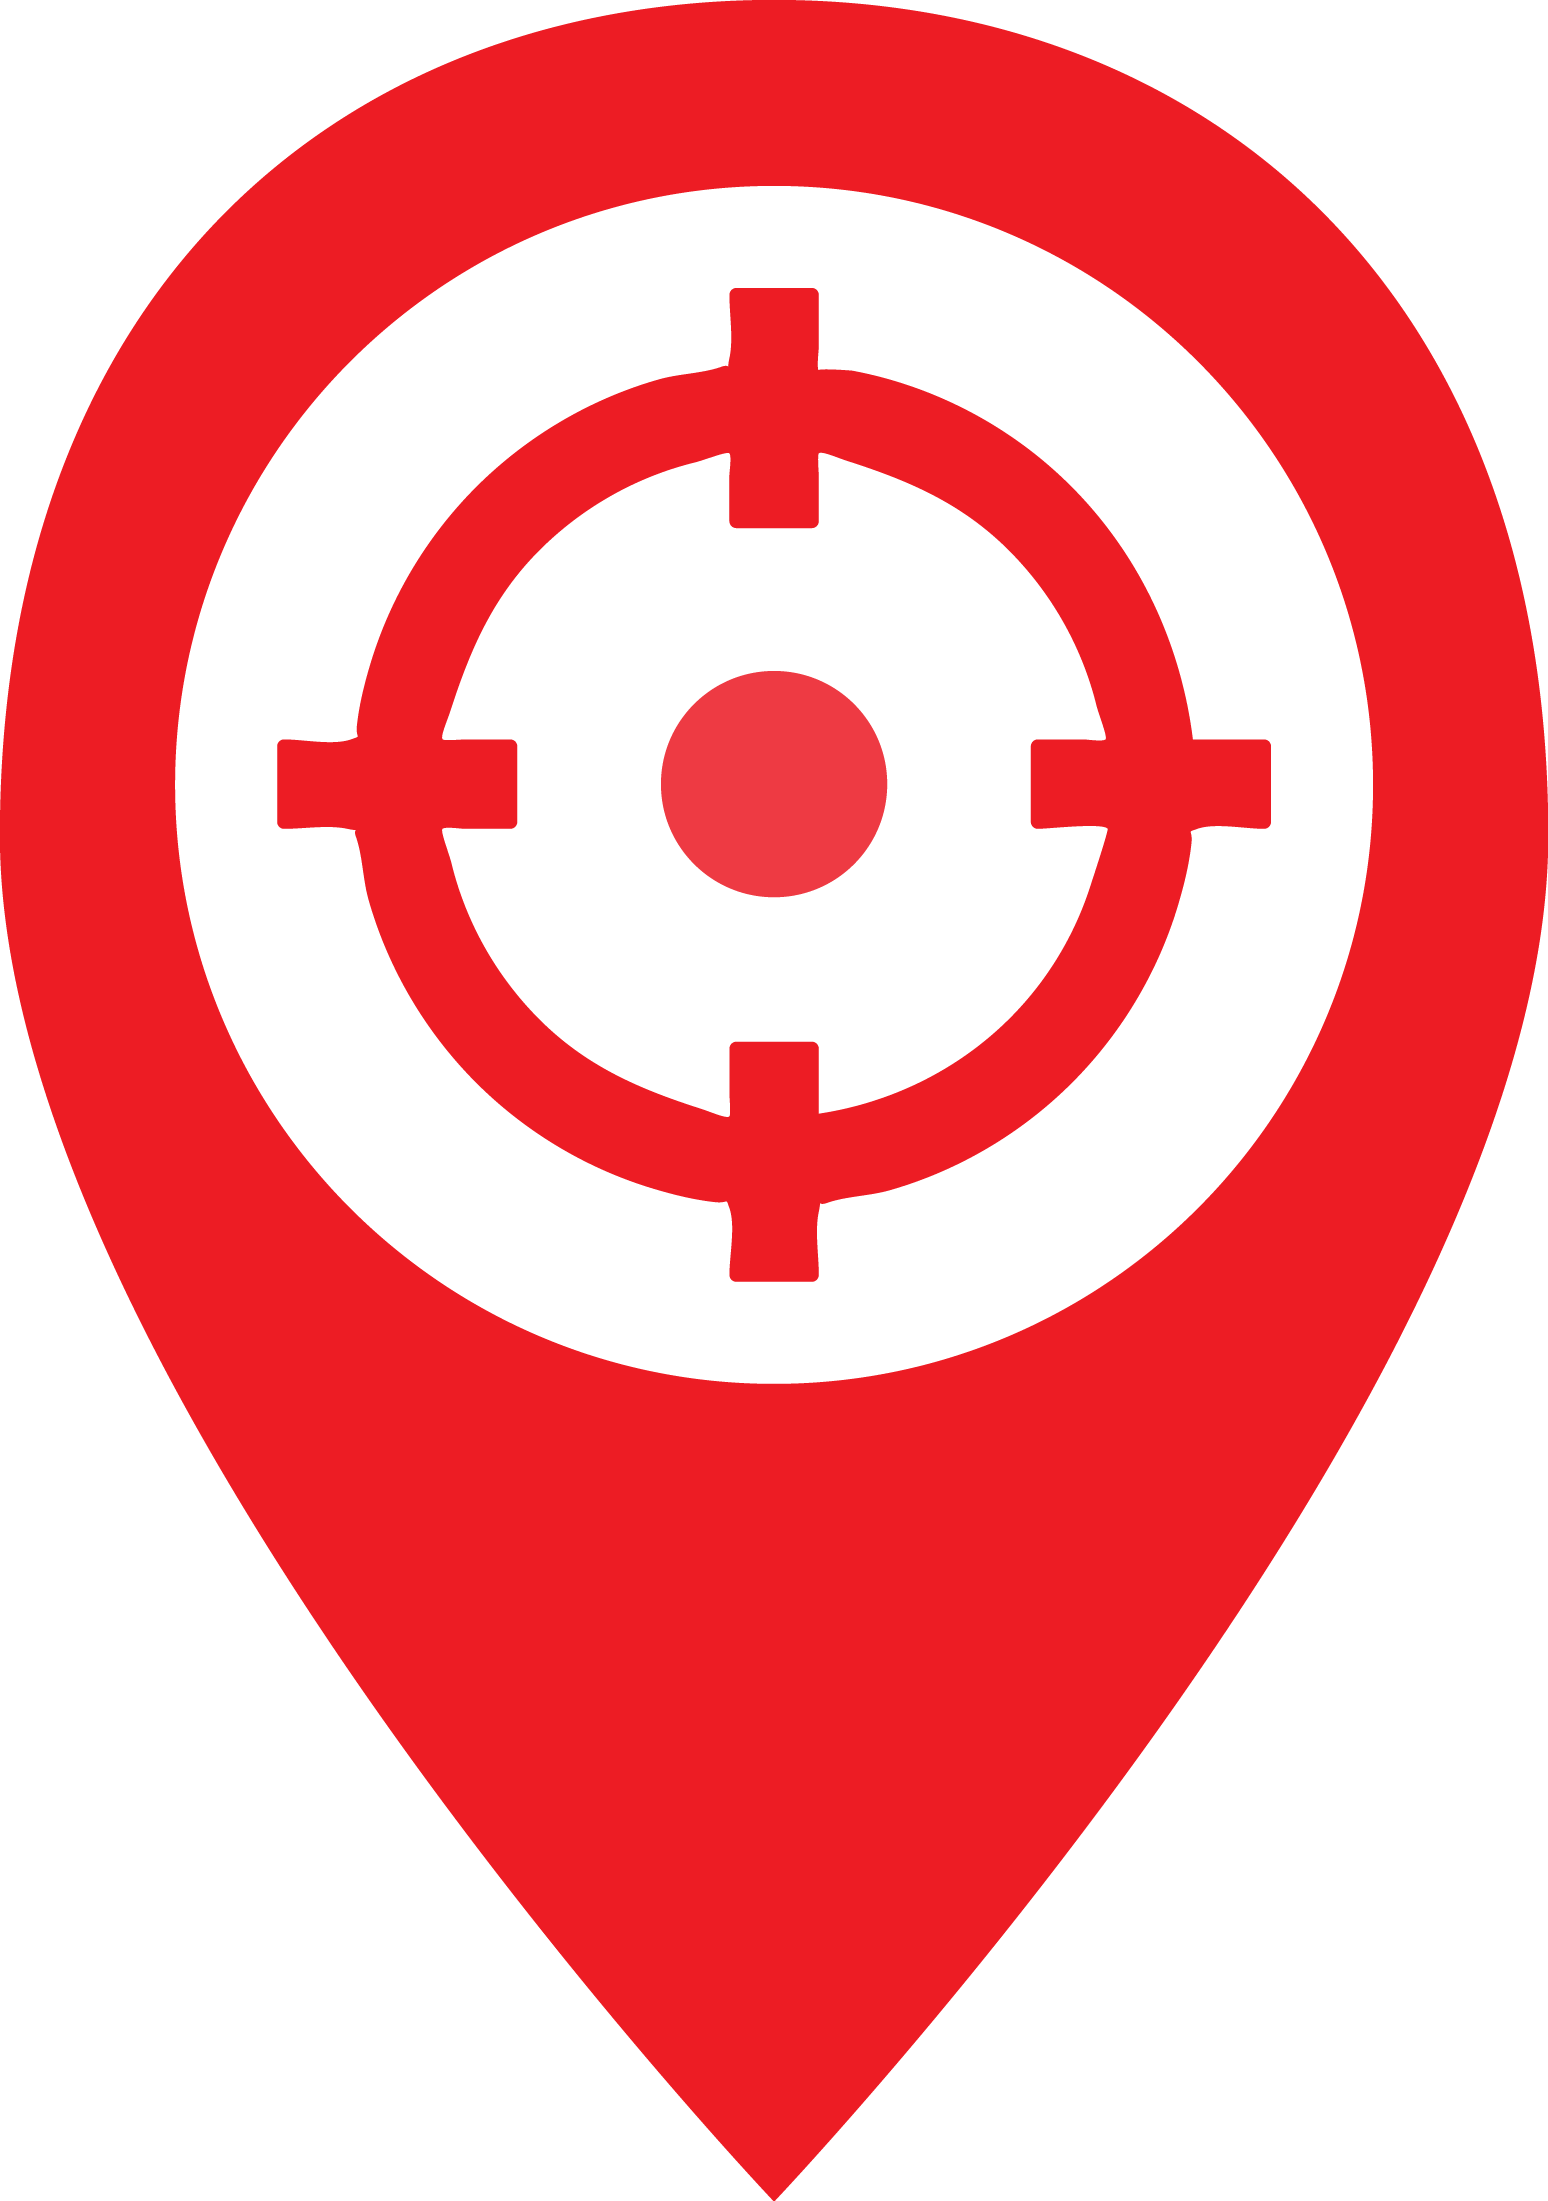 Icon_Pins_ targetred.png